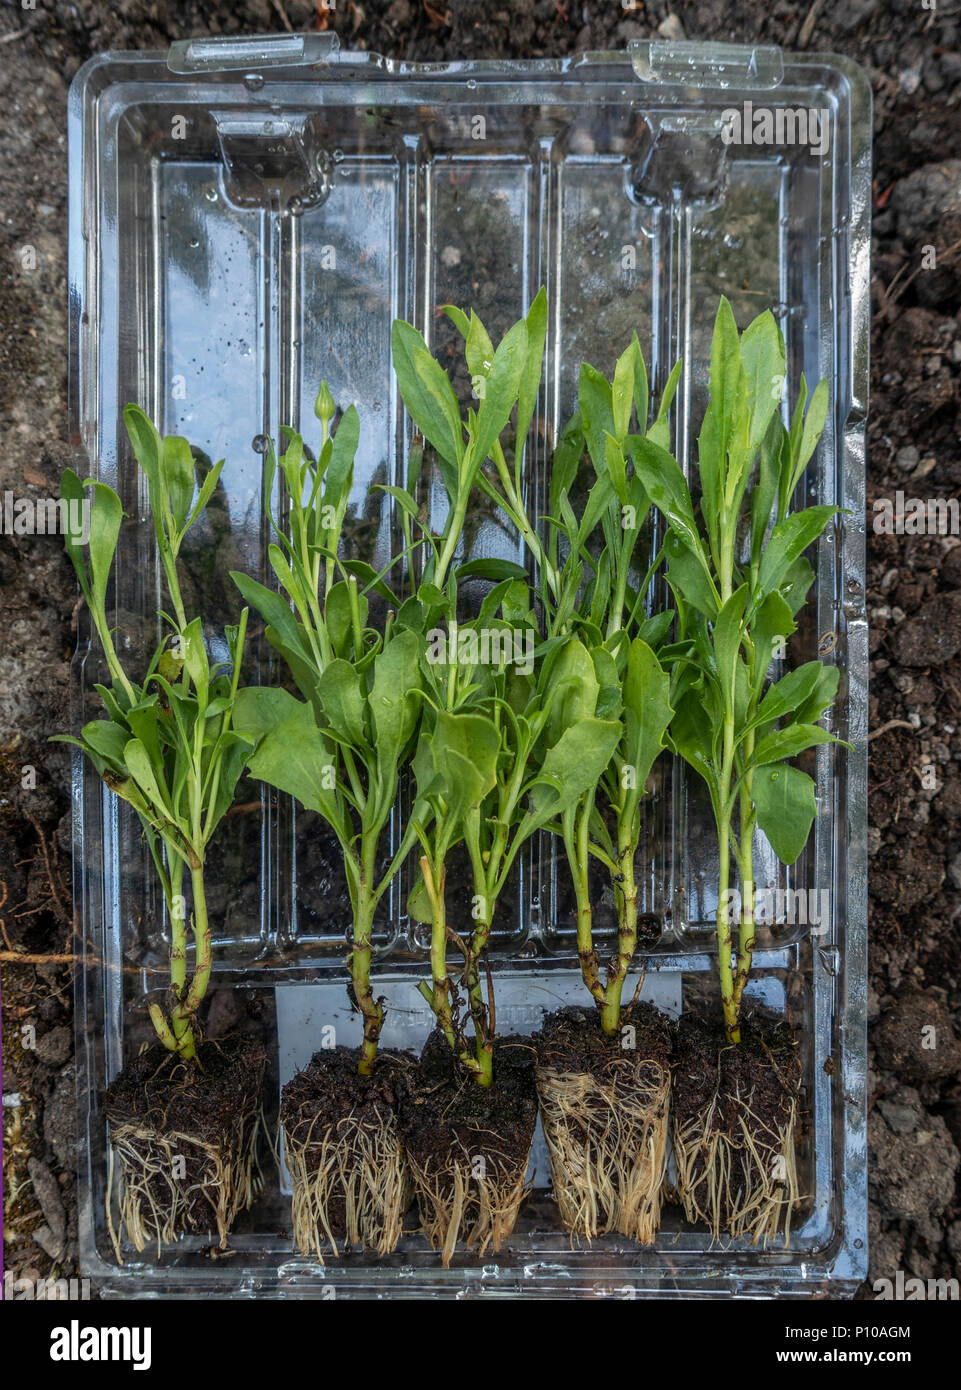 Five seedlings of Osterspermum 'Serenity Red' (= 'Balsered'), in its plastic postal container, ready to be planted out in a garden. - Stock Image